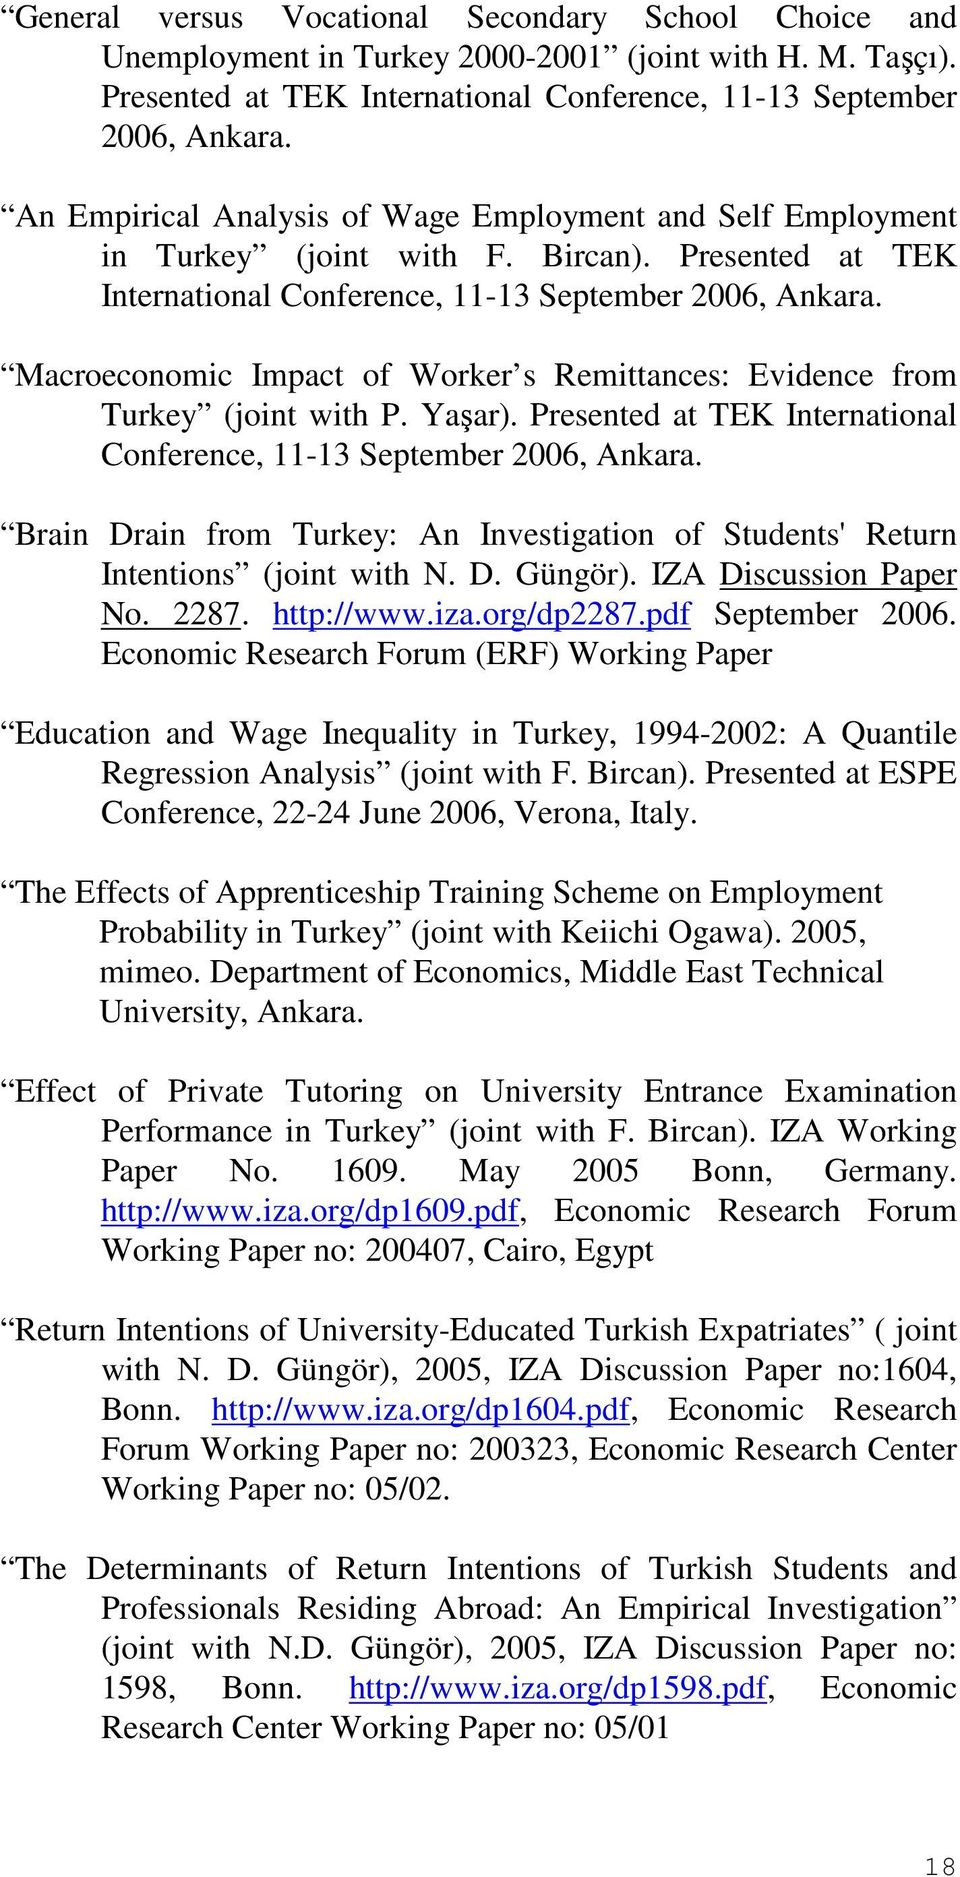 Macroeconomic Impact of Worker s Remittances: Evidence from Turkey (joint with P. Yaşar). Presented at TEK International Conference, 11-13 September 2006, Ankara.